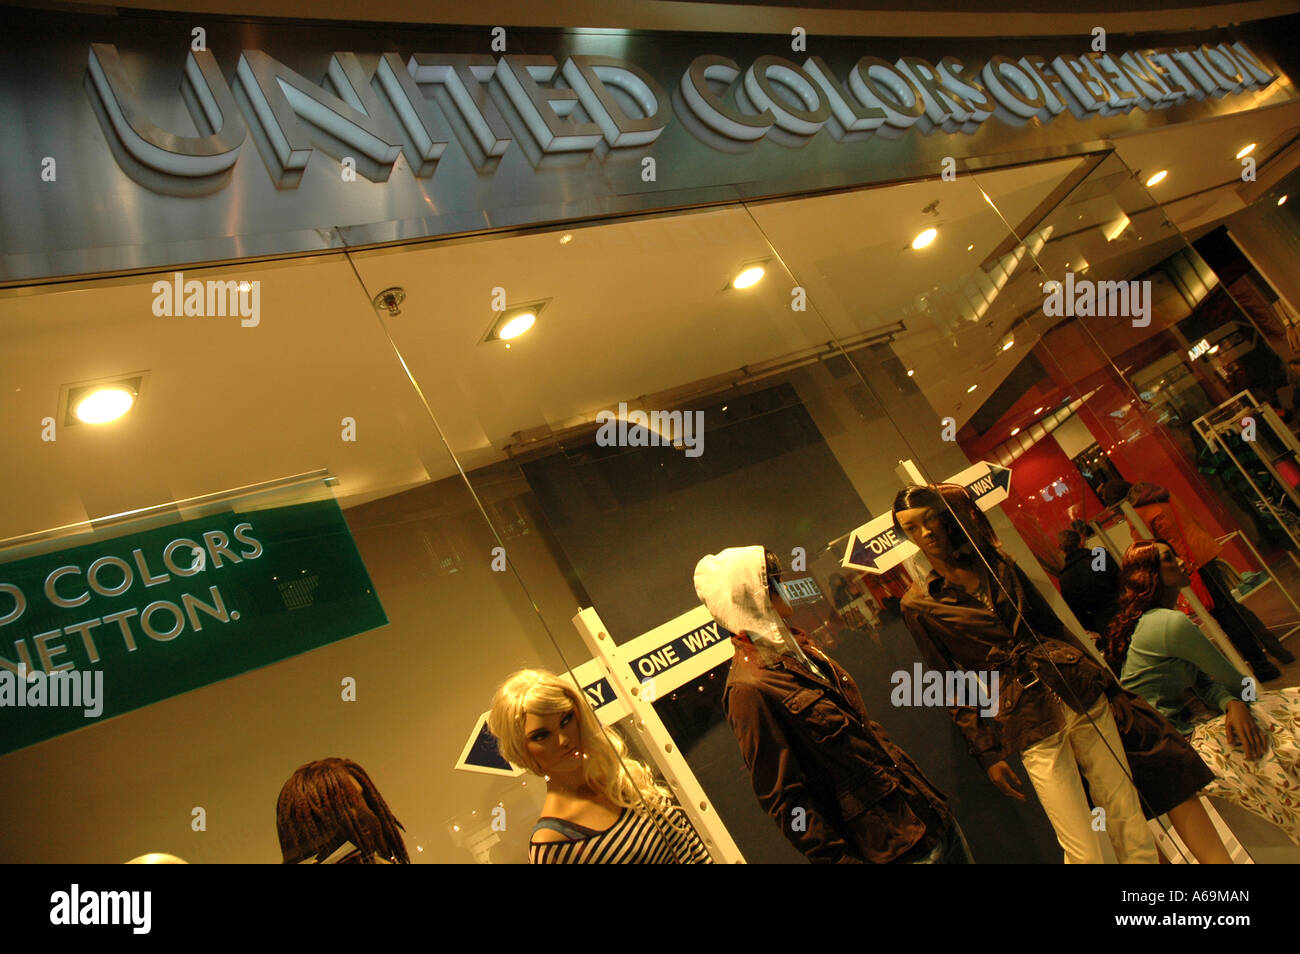 Shop window united colors benetton stock photos shop for Benetton usa online shop